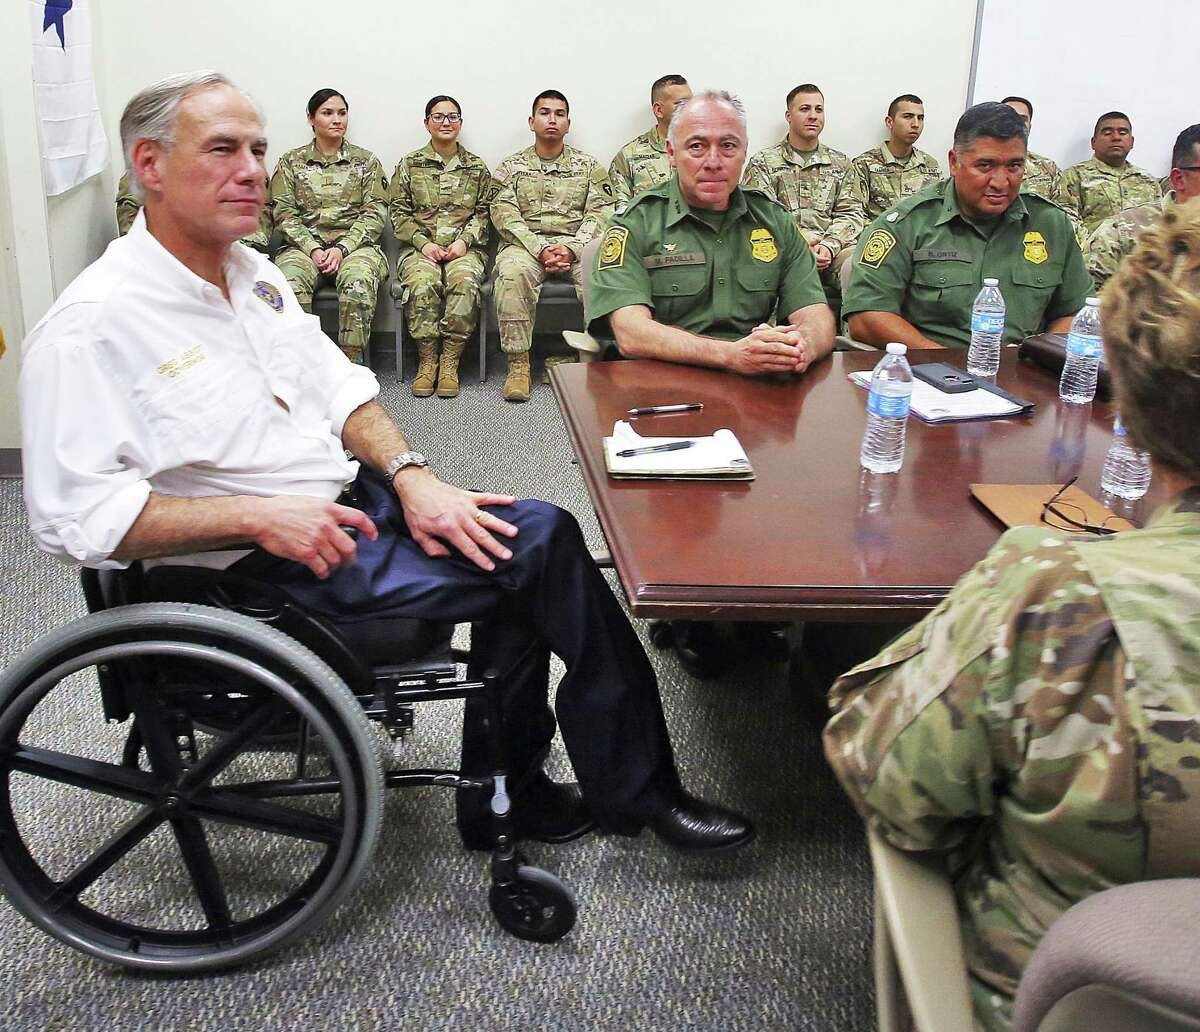 Gov. Greg Abbott, left, talks with leaders of the Texas National Guard and the Border Patrol at the Texas National Guard Armory on April 12 in Weslaco. Abbott announced that there will be an increase of 1,000 Texas National Guard on the southern border with Mexico.